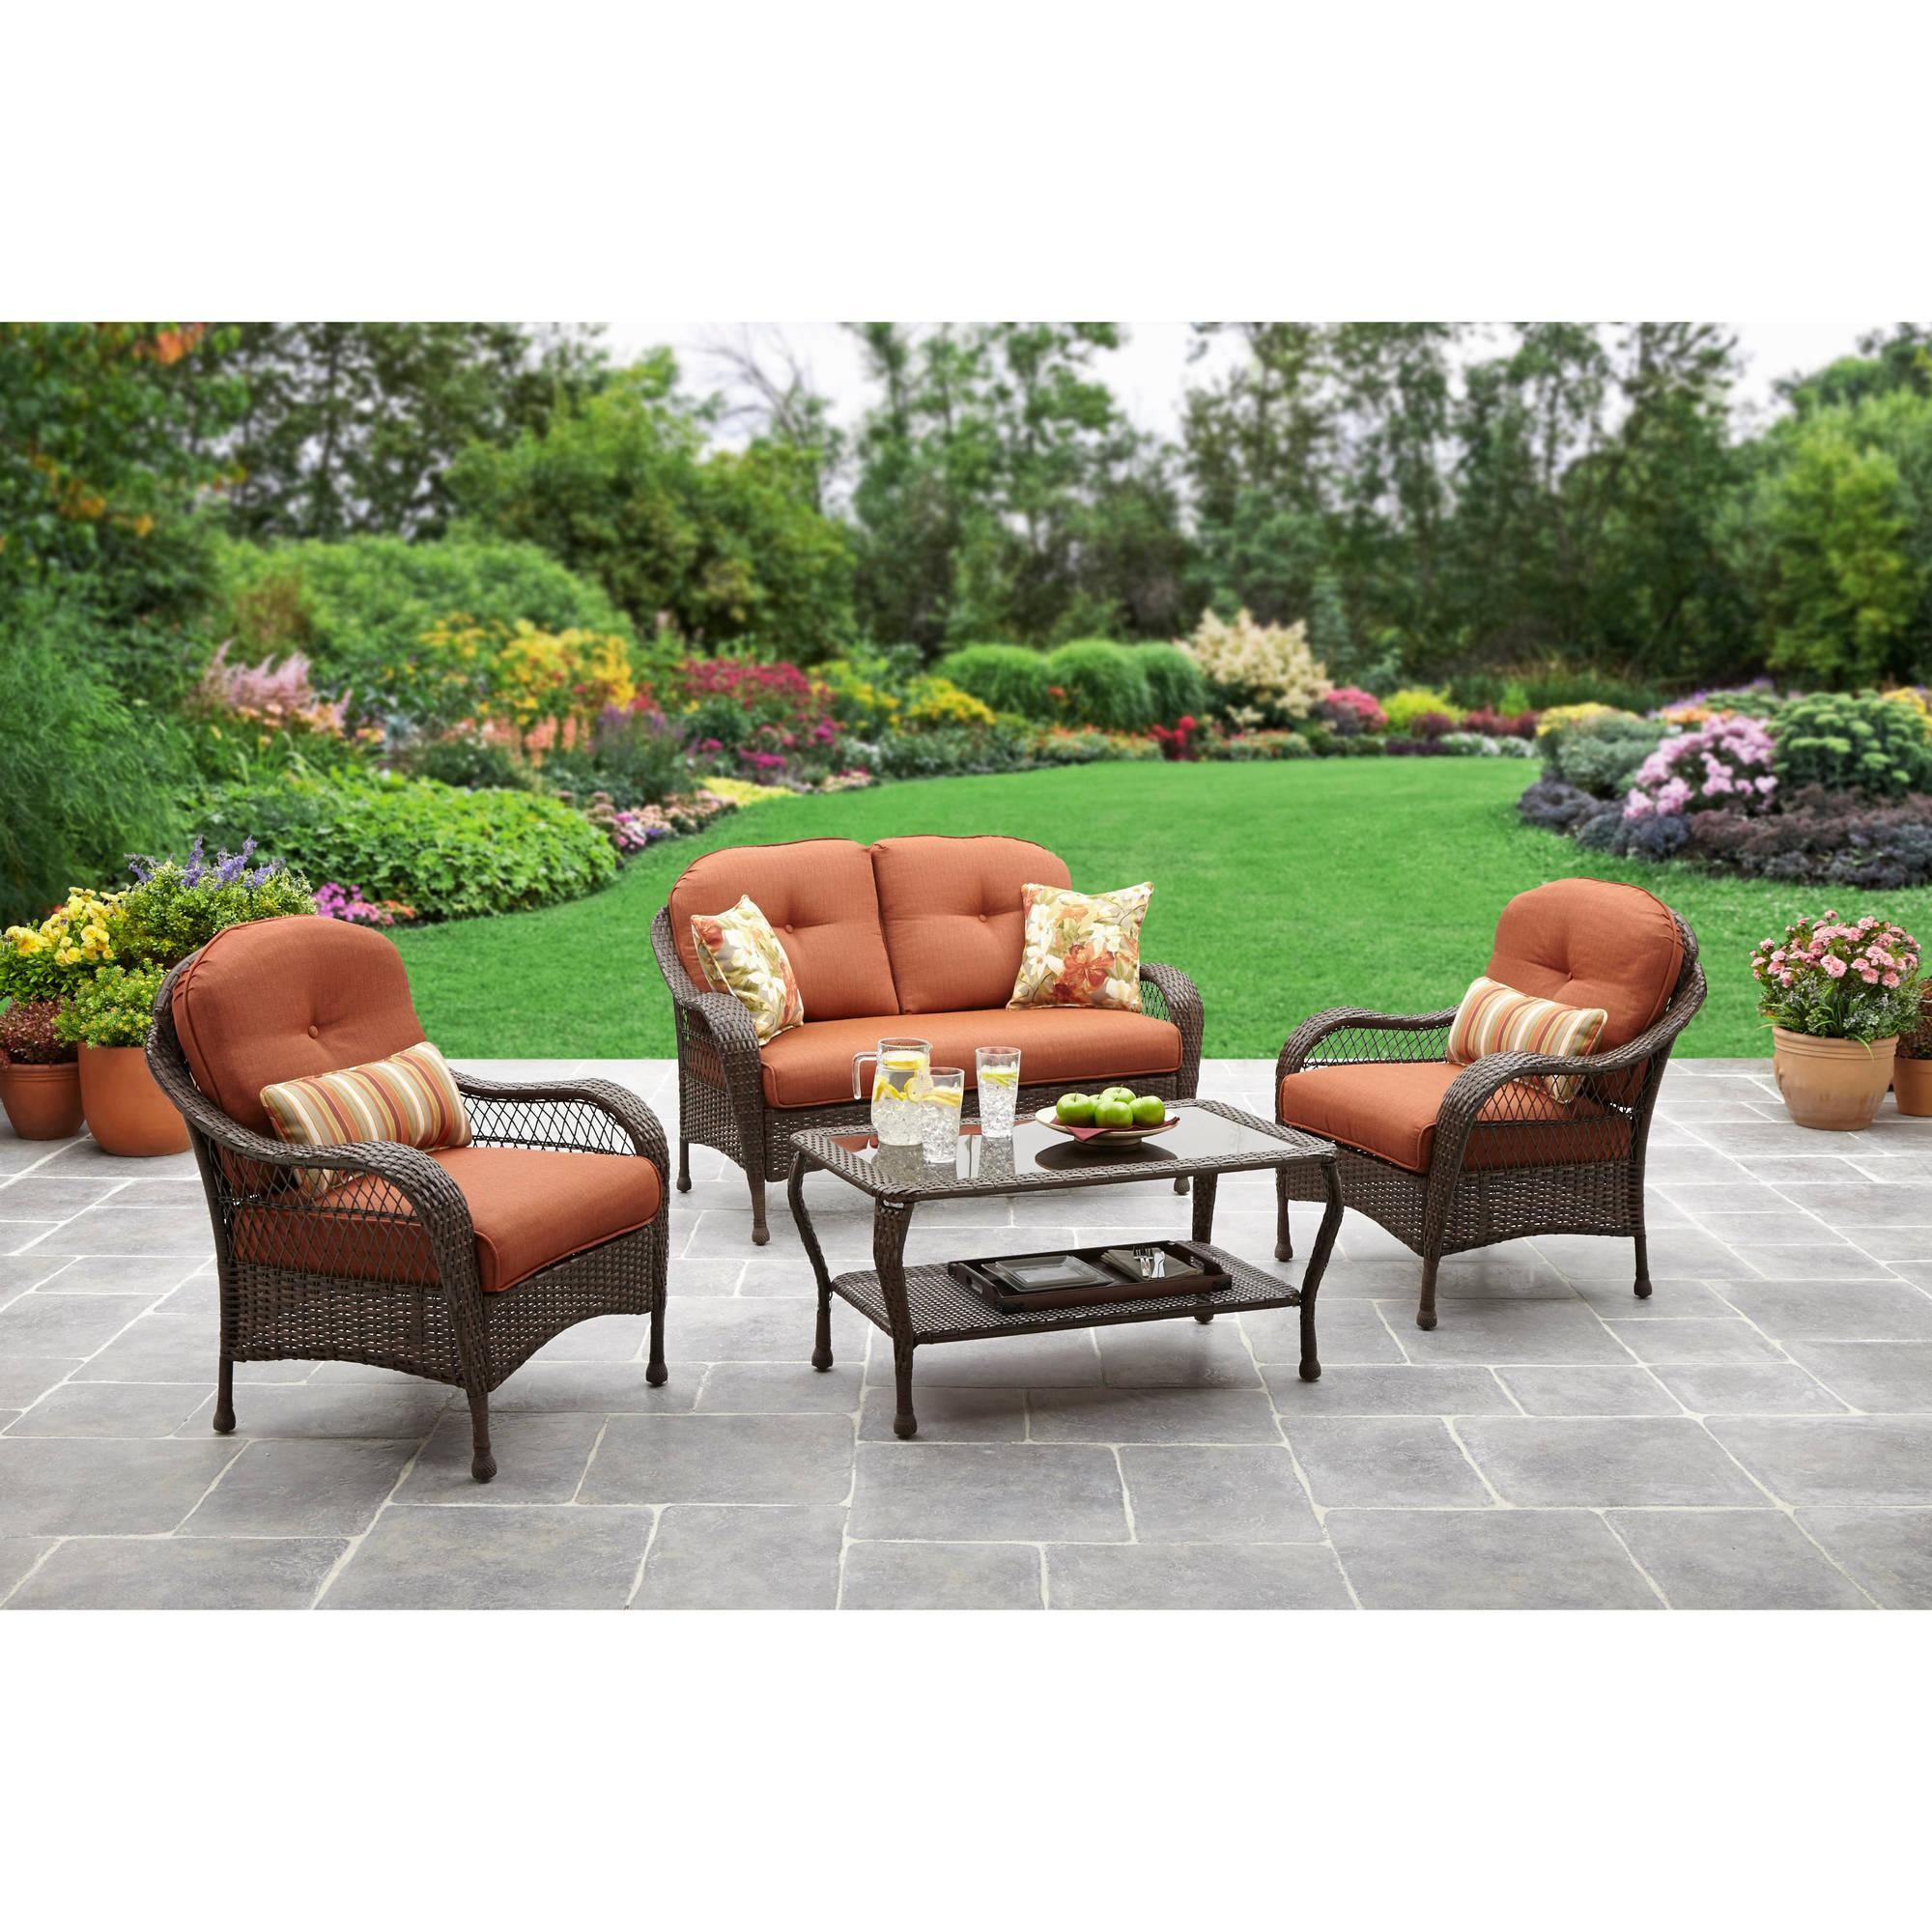 Better Homes And Gardens Patio Cushions Replacement Cushions For